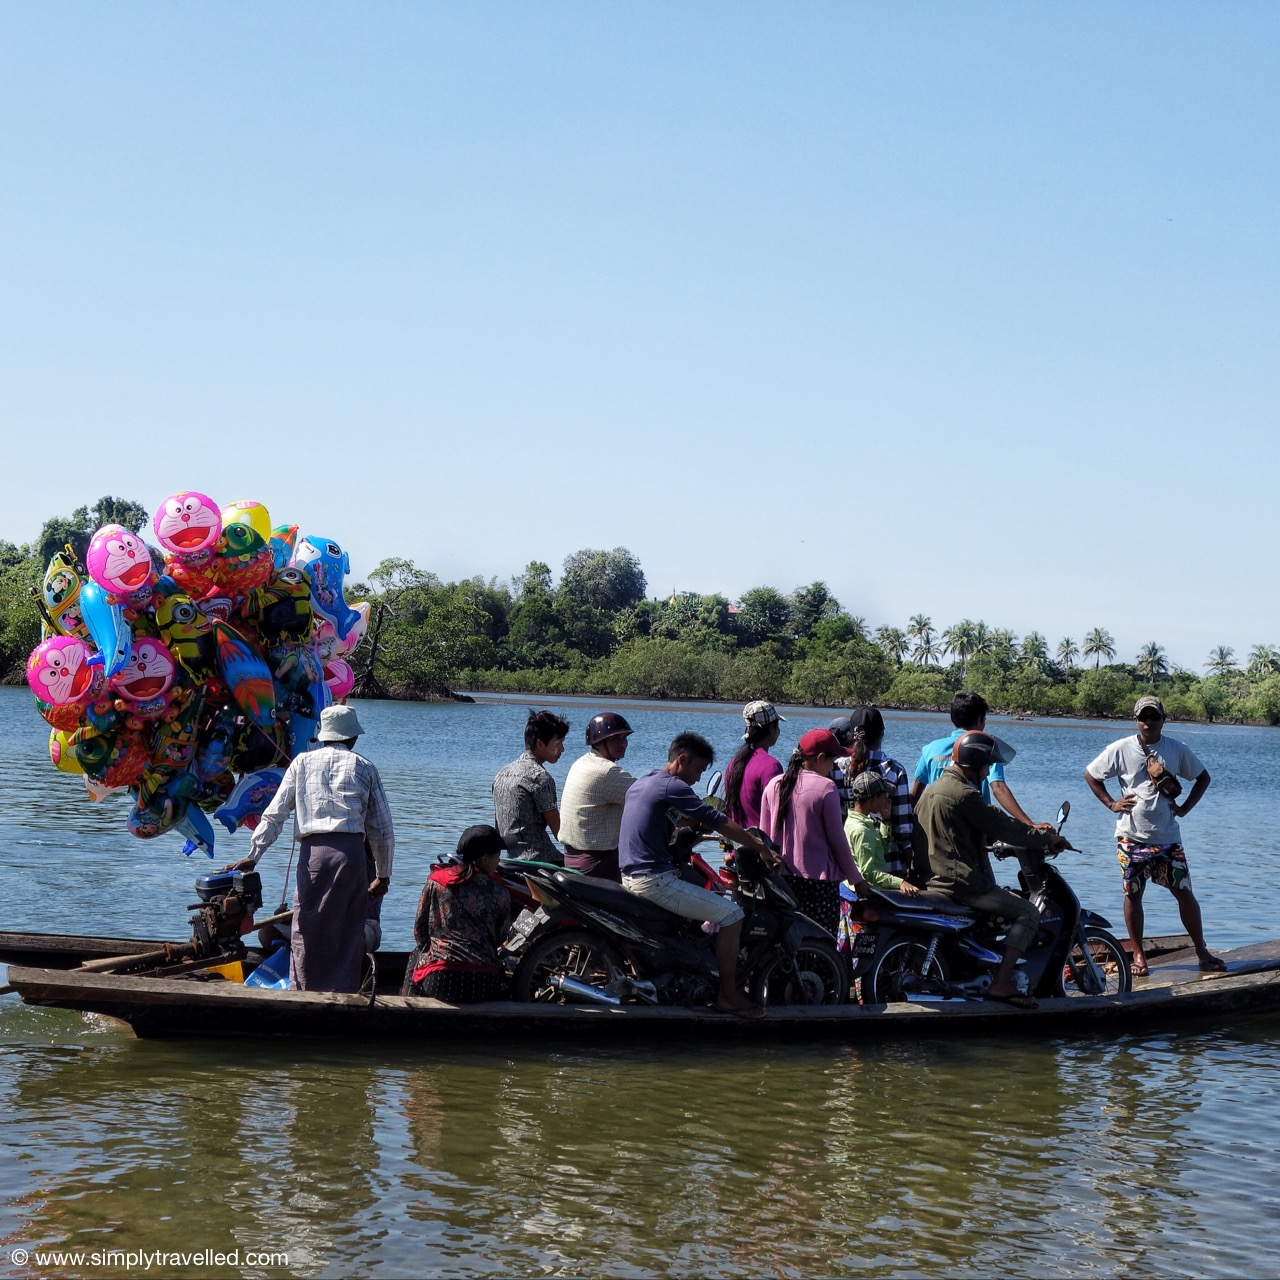 Don't worry, the balloons will keep you afloat! - ngwe saung beach